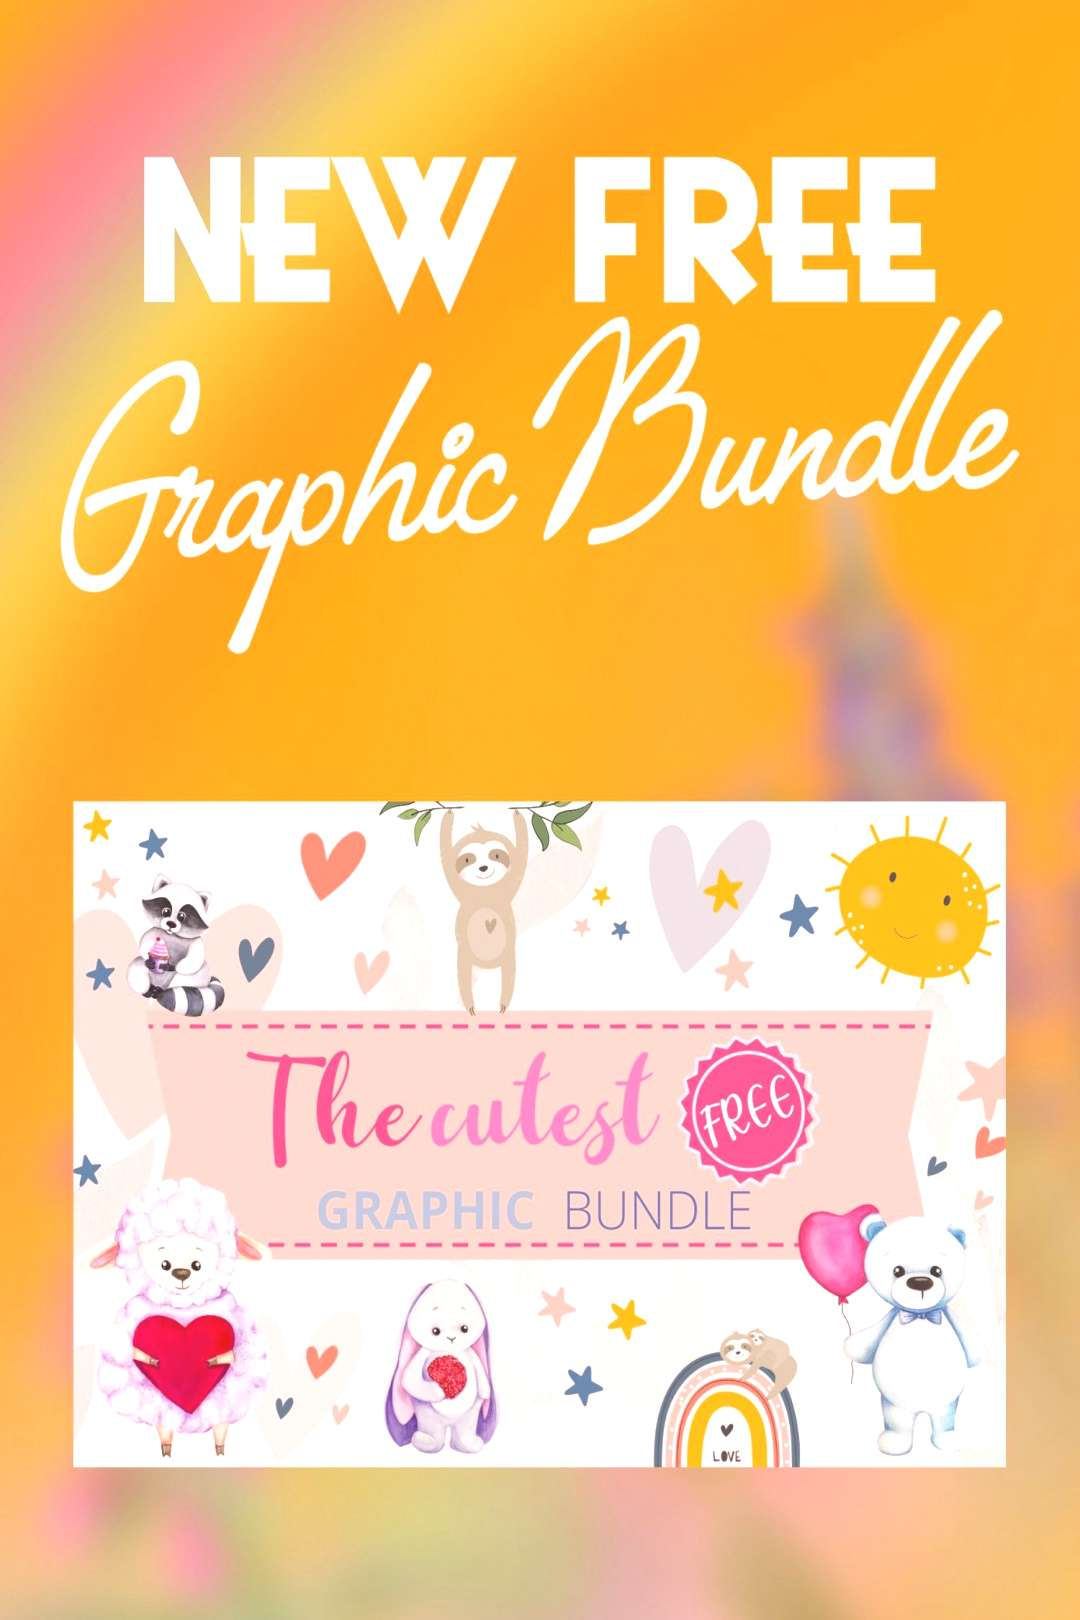 ? The Cutest Free Graphic Bundle ? The Cutest Free Graphic Bundle This bundle includes 16 Pre